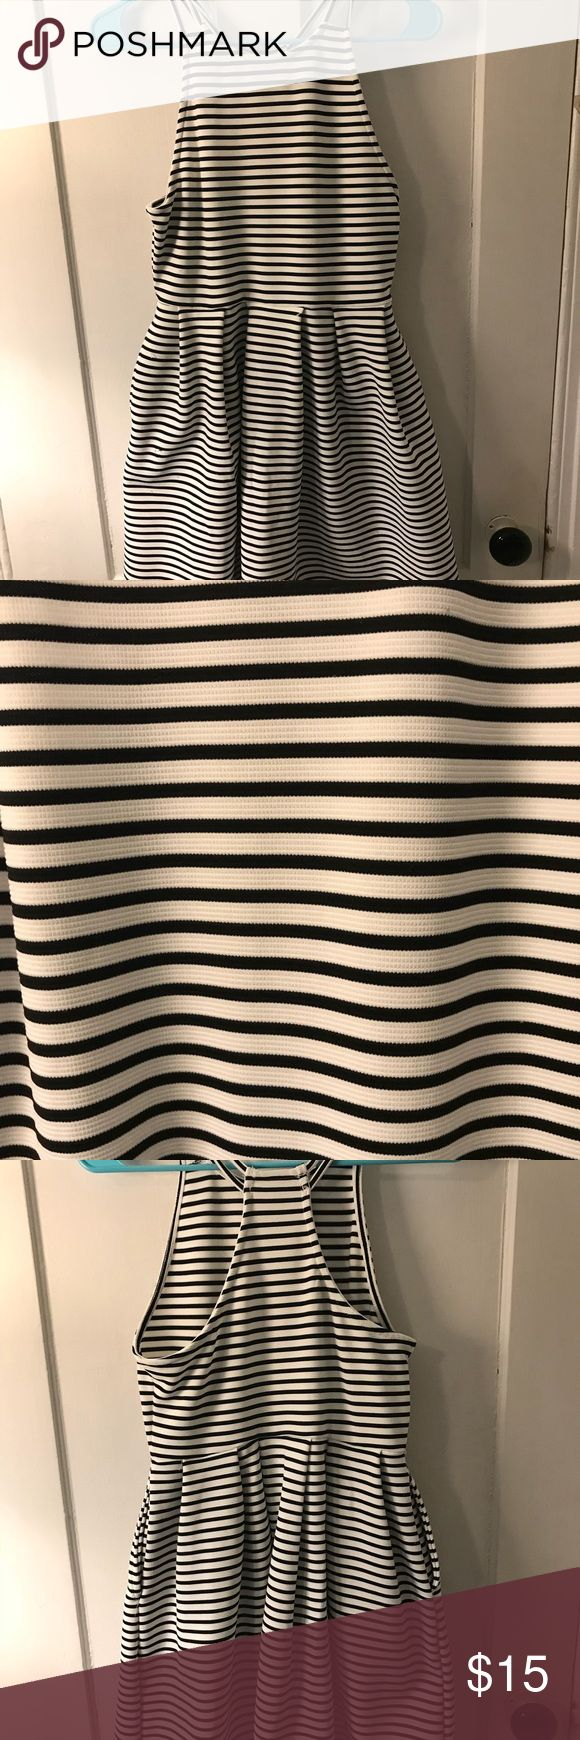 Black and white striped formal dress Wonderful material, stretchy, perfect for a holiday outfit, the top is tight and the bottom is flowing. Has two pockets as picture! Accepting offers! SO Dresses Midi